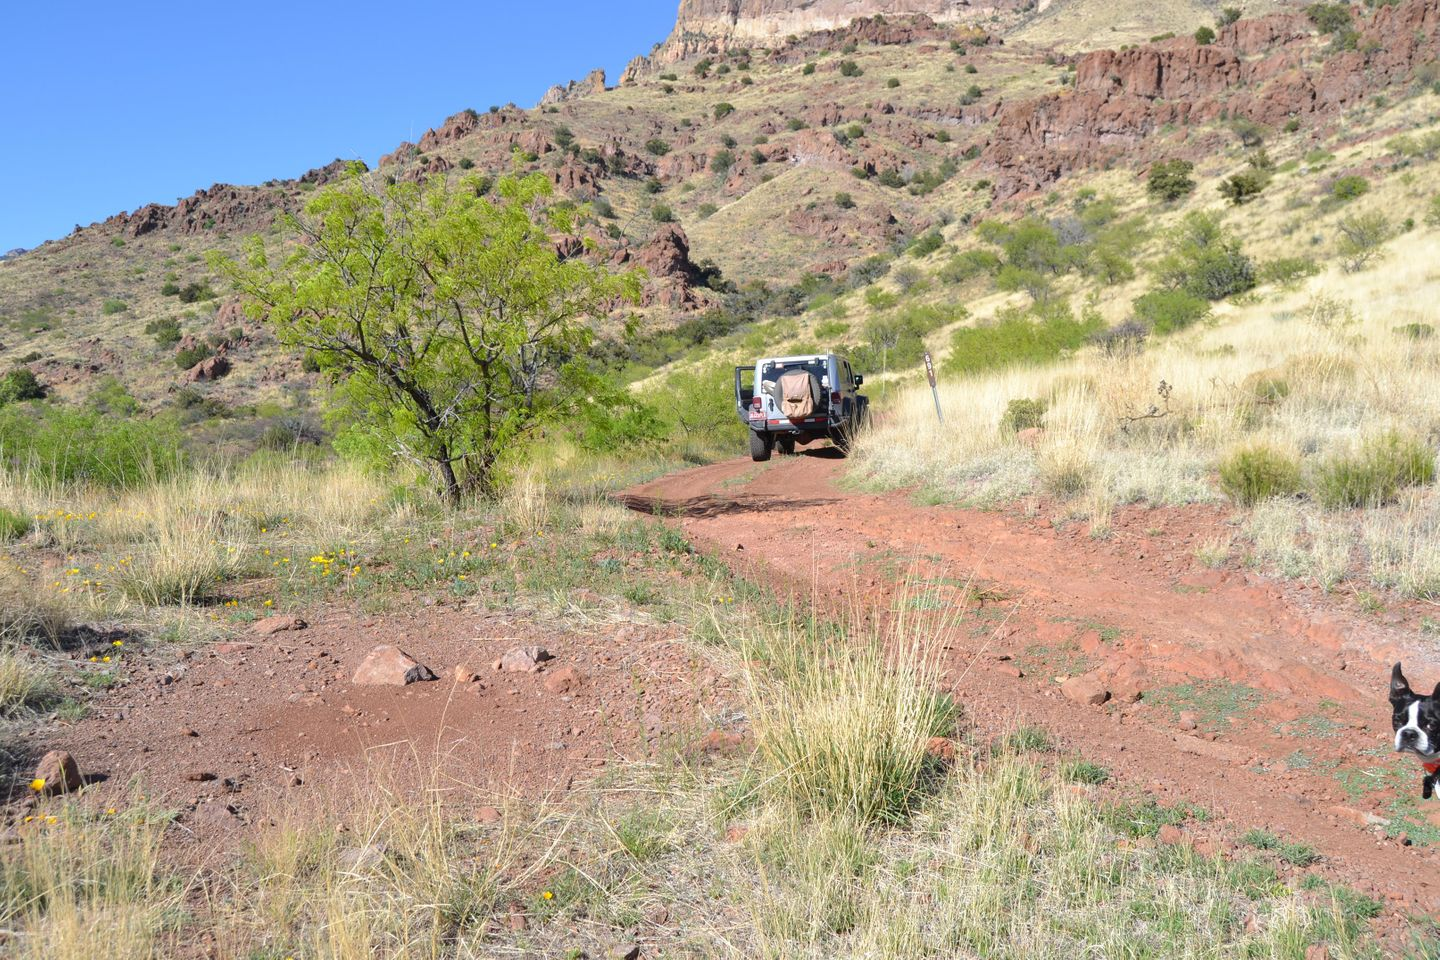 Jackson Cabin/Muleshoe Ranch Road - Waypoint 15: Natural Rock Bridge